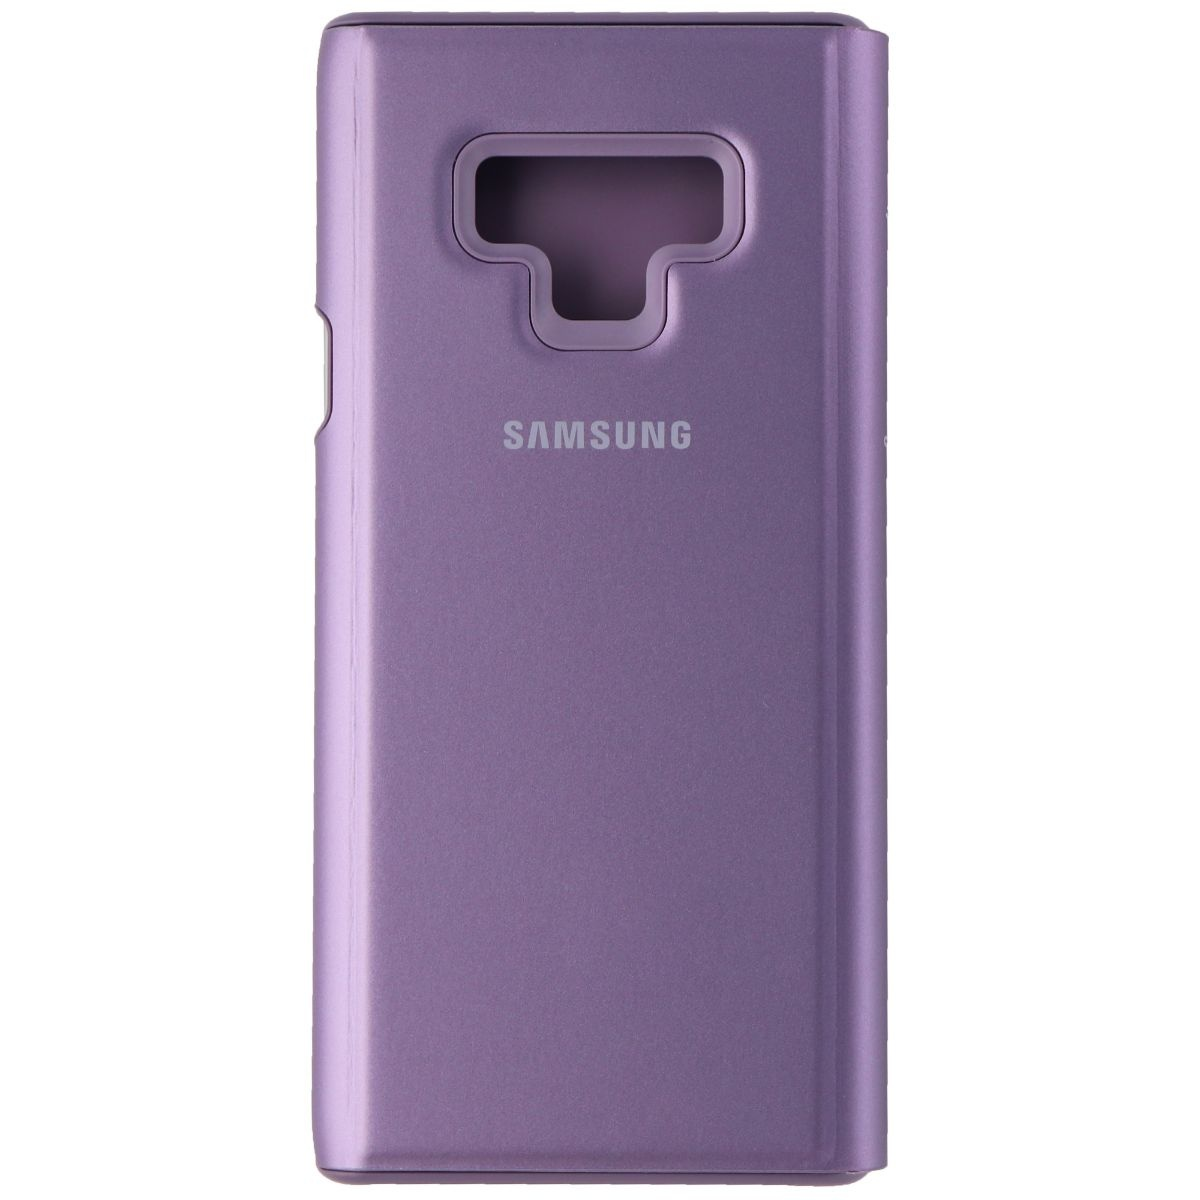 Samsung S-View Cover Case for Galaxy Note 9 - Lavender Purple